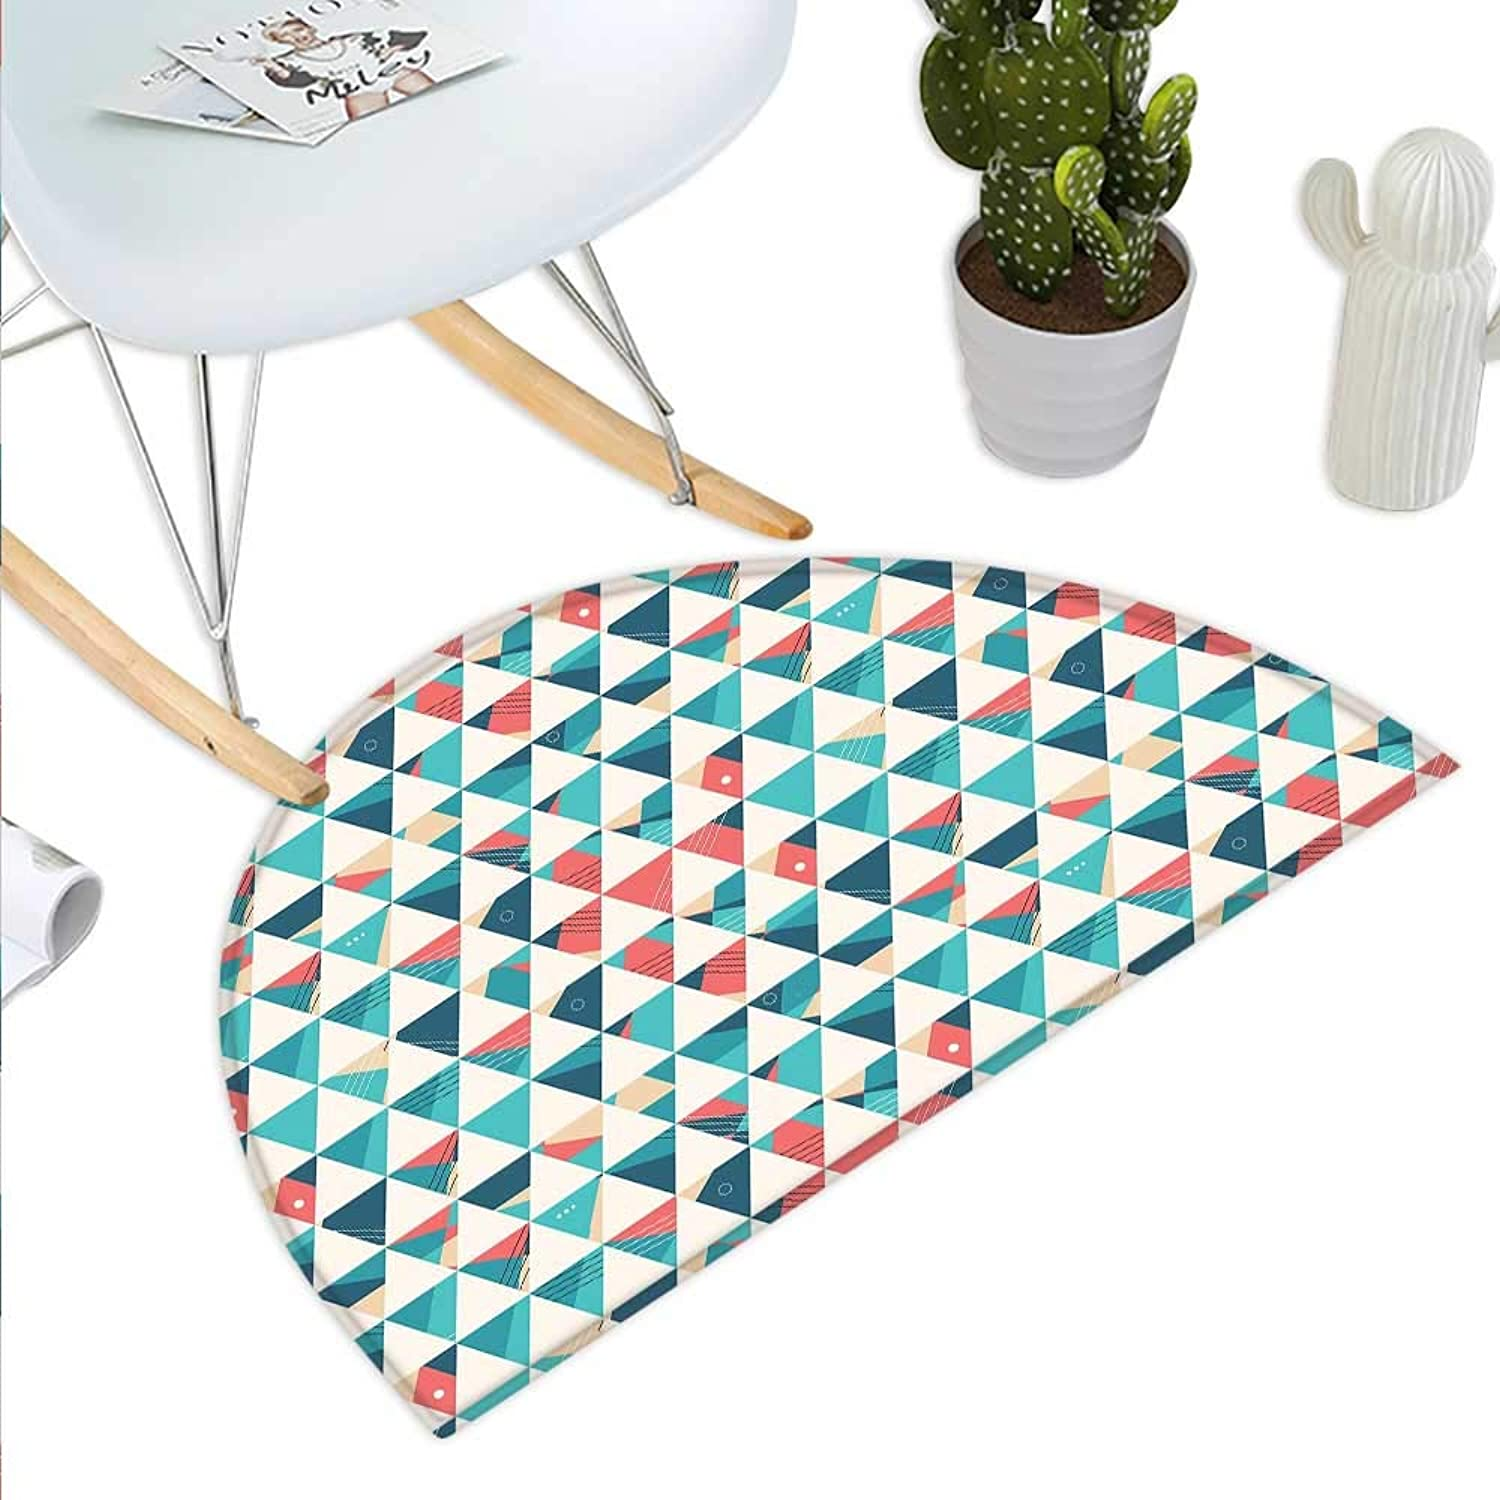 Geometric Semicircle Doormat Abstract Triangles Hexagons Soft colors Modern Artwork Cubism Inspired Halfmoon doormats H 35.4  xD 53.1  Turquoise Teal Coral